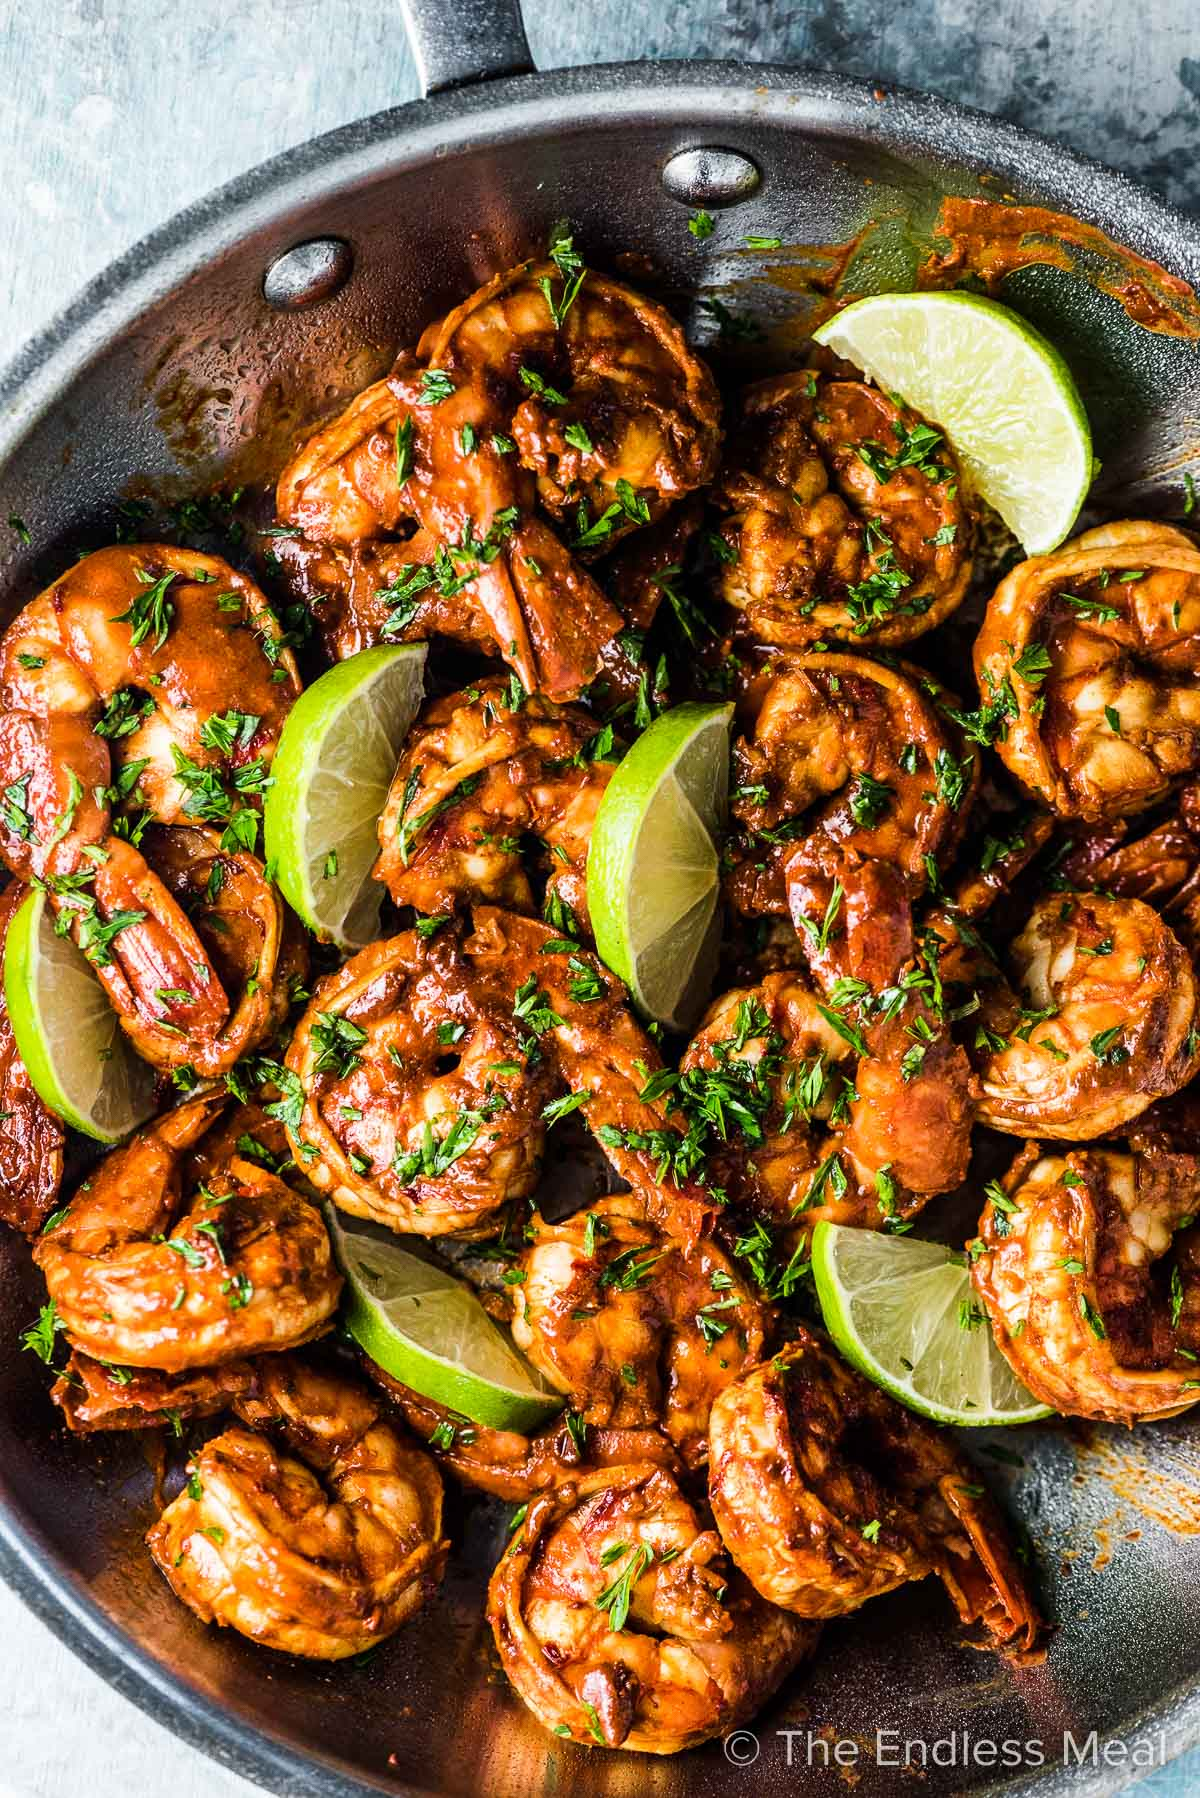 Chili lime shrimp in a pan with lime slices.